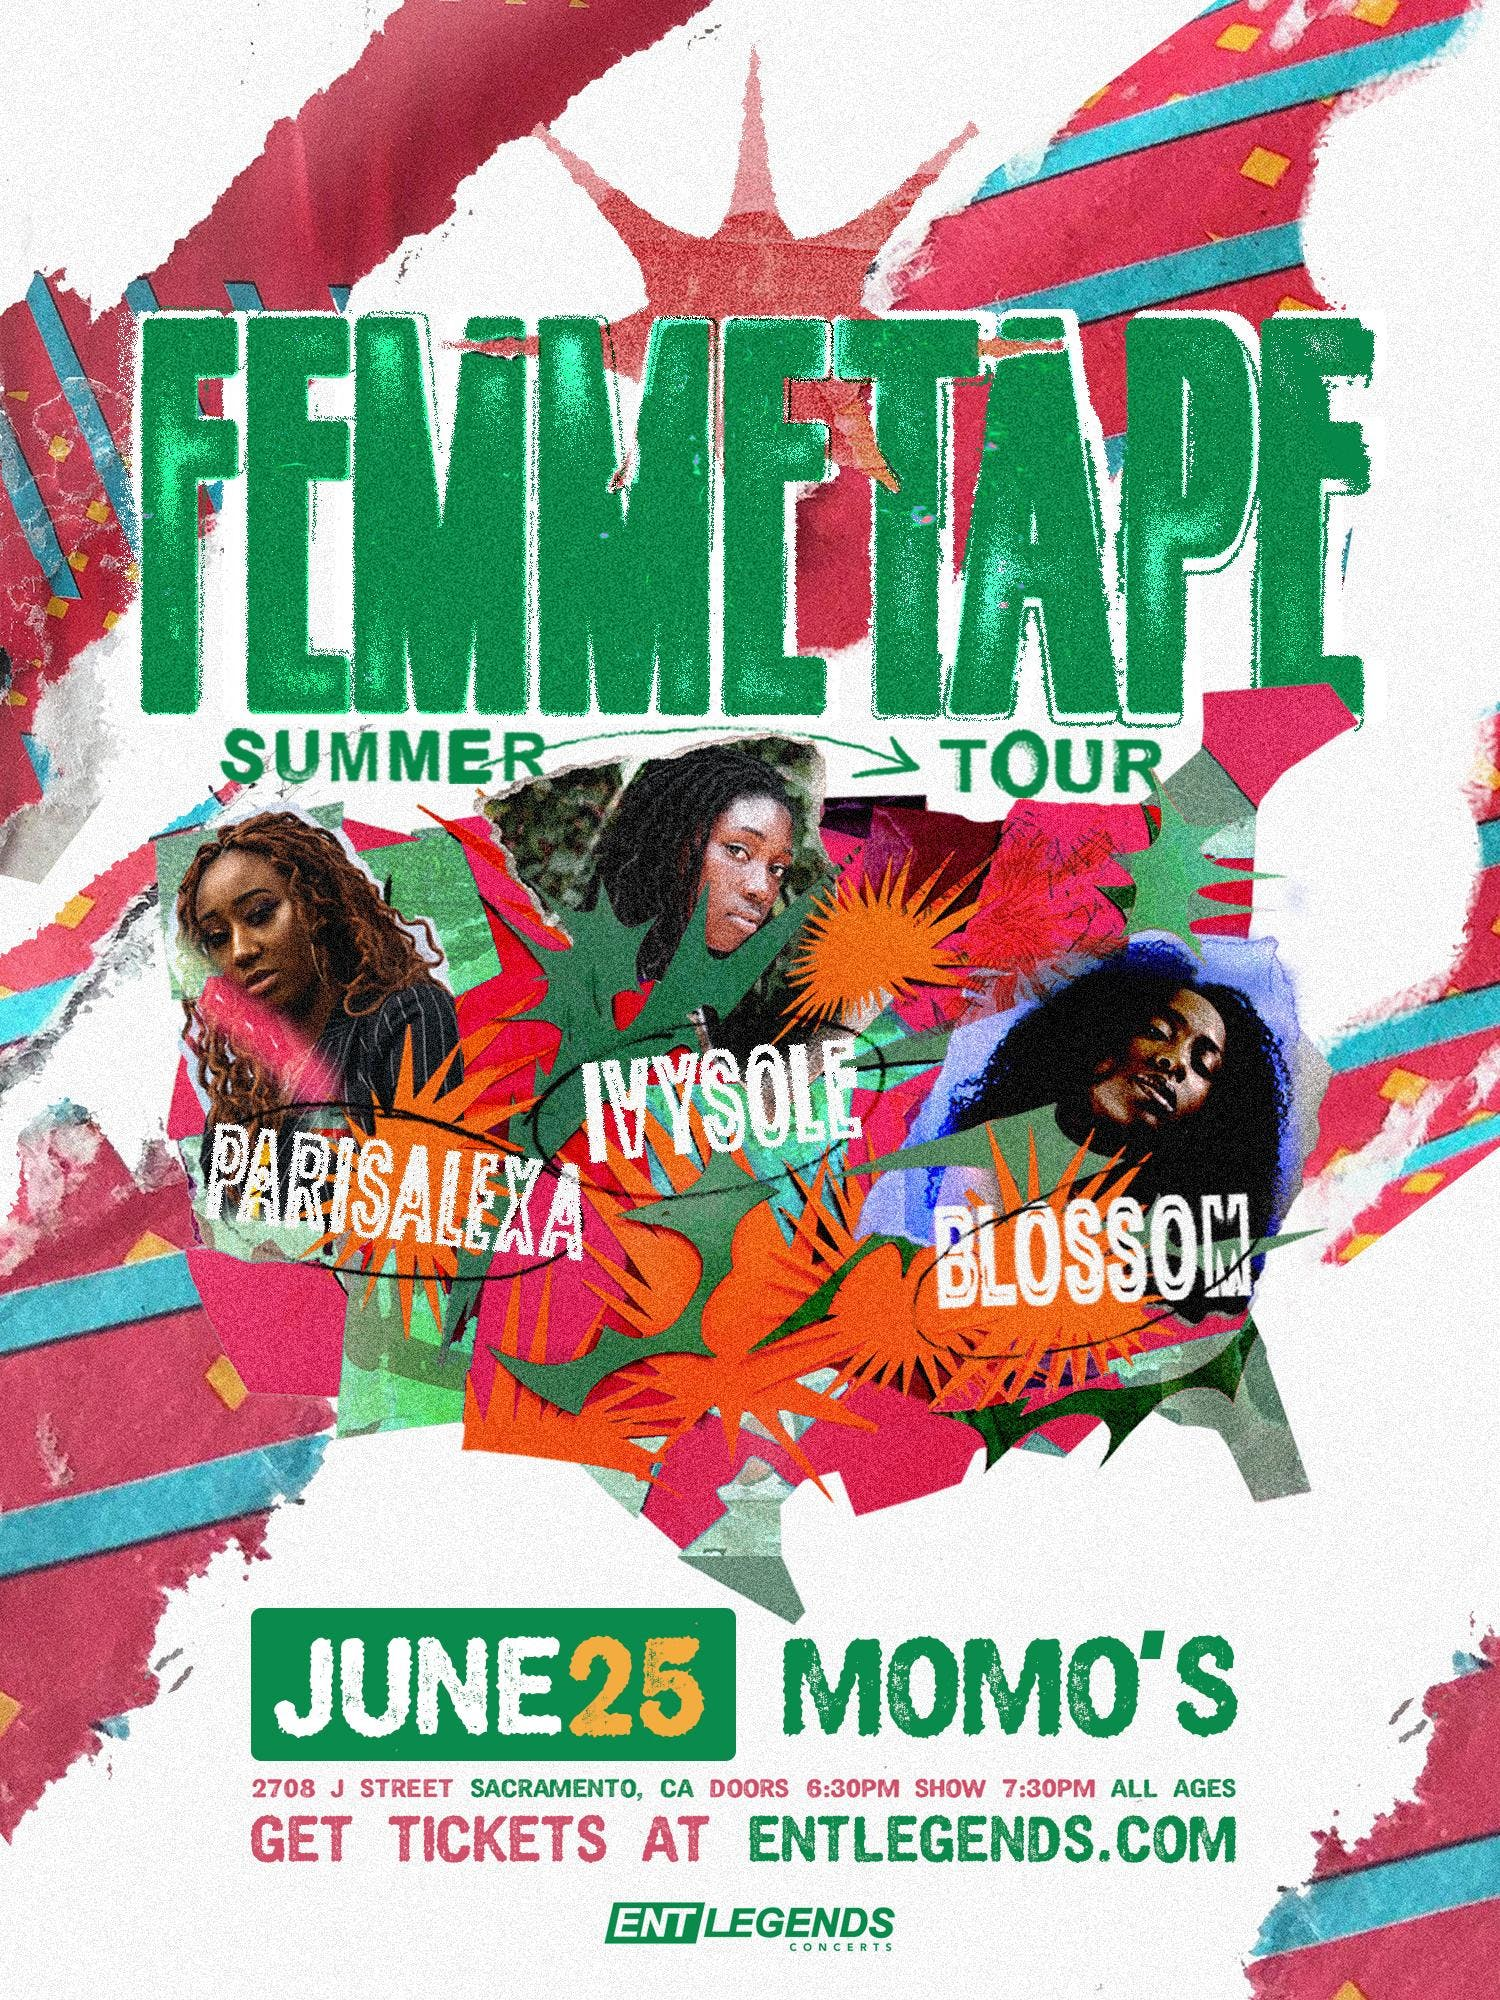 Ivy Sole, Blossom, & Parisalexa: The FEMMETAPE Tour